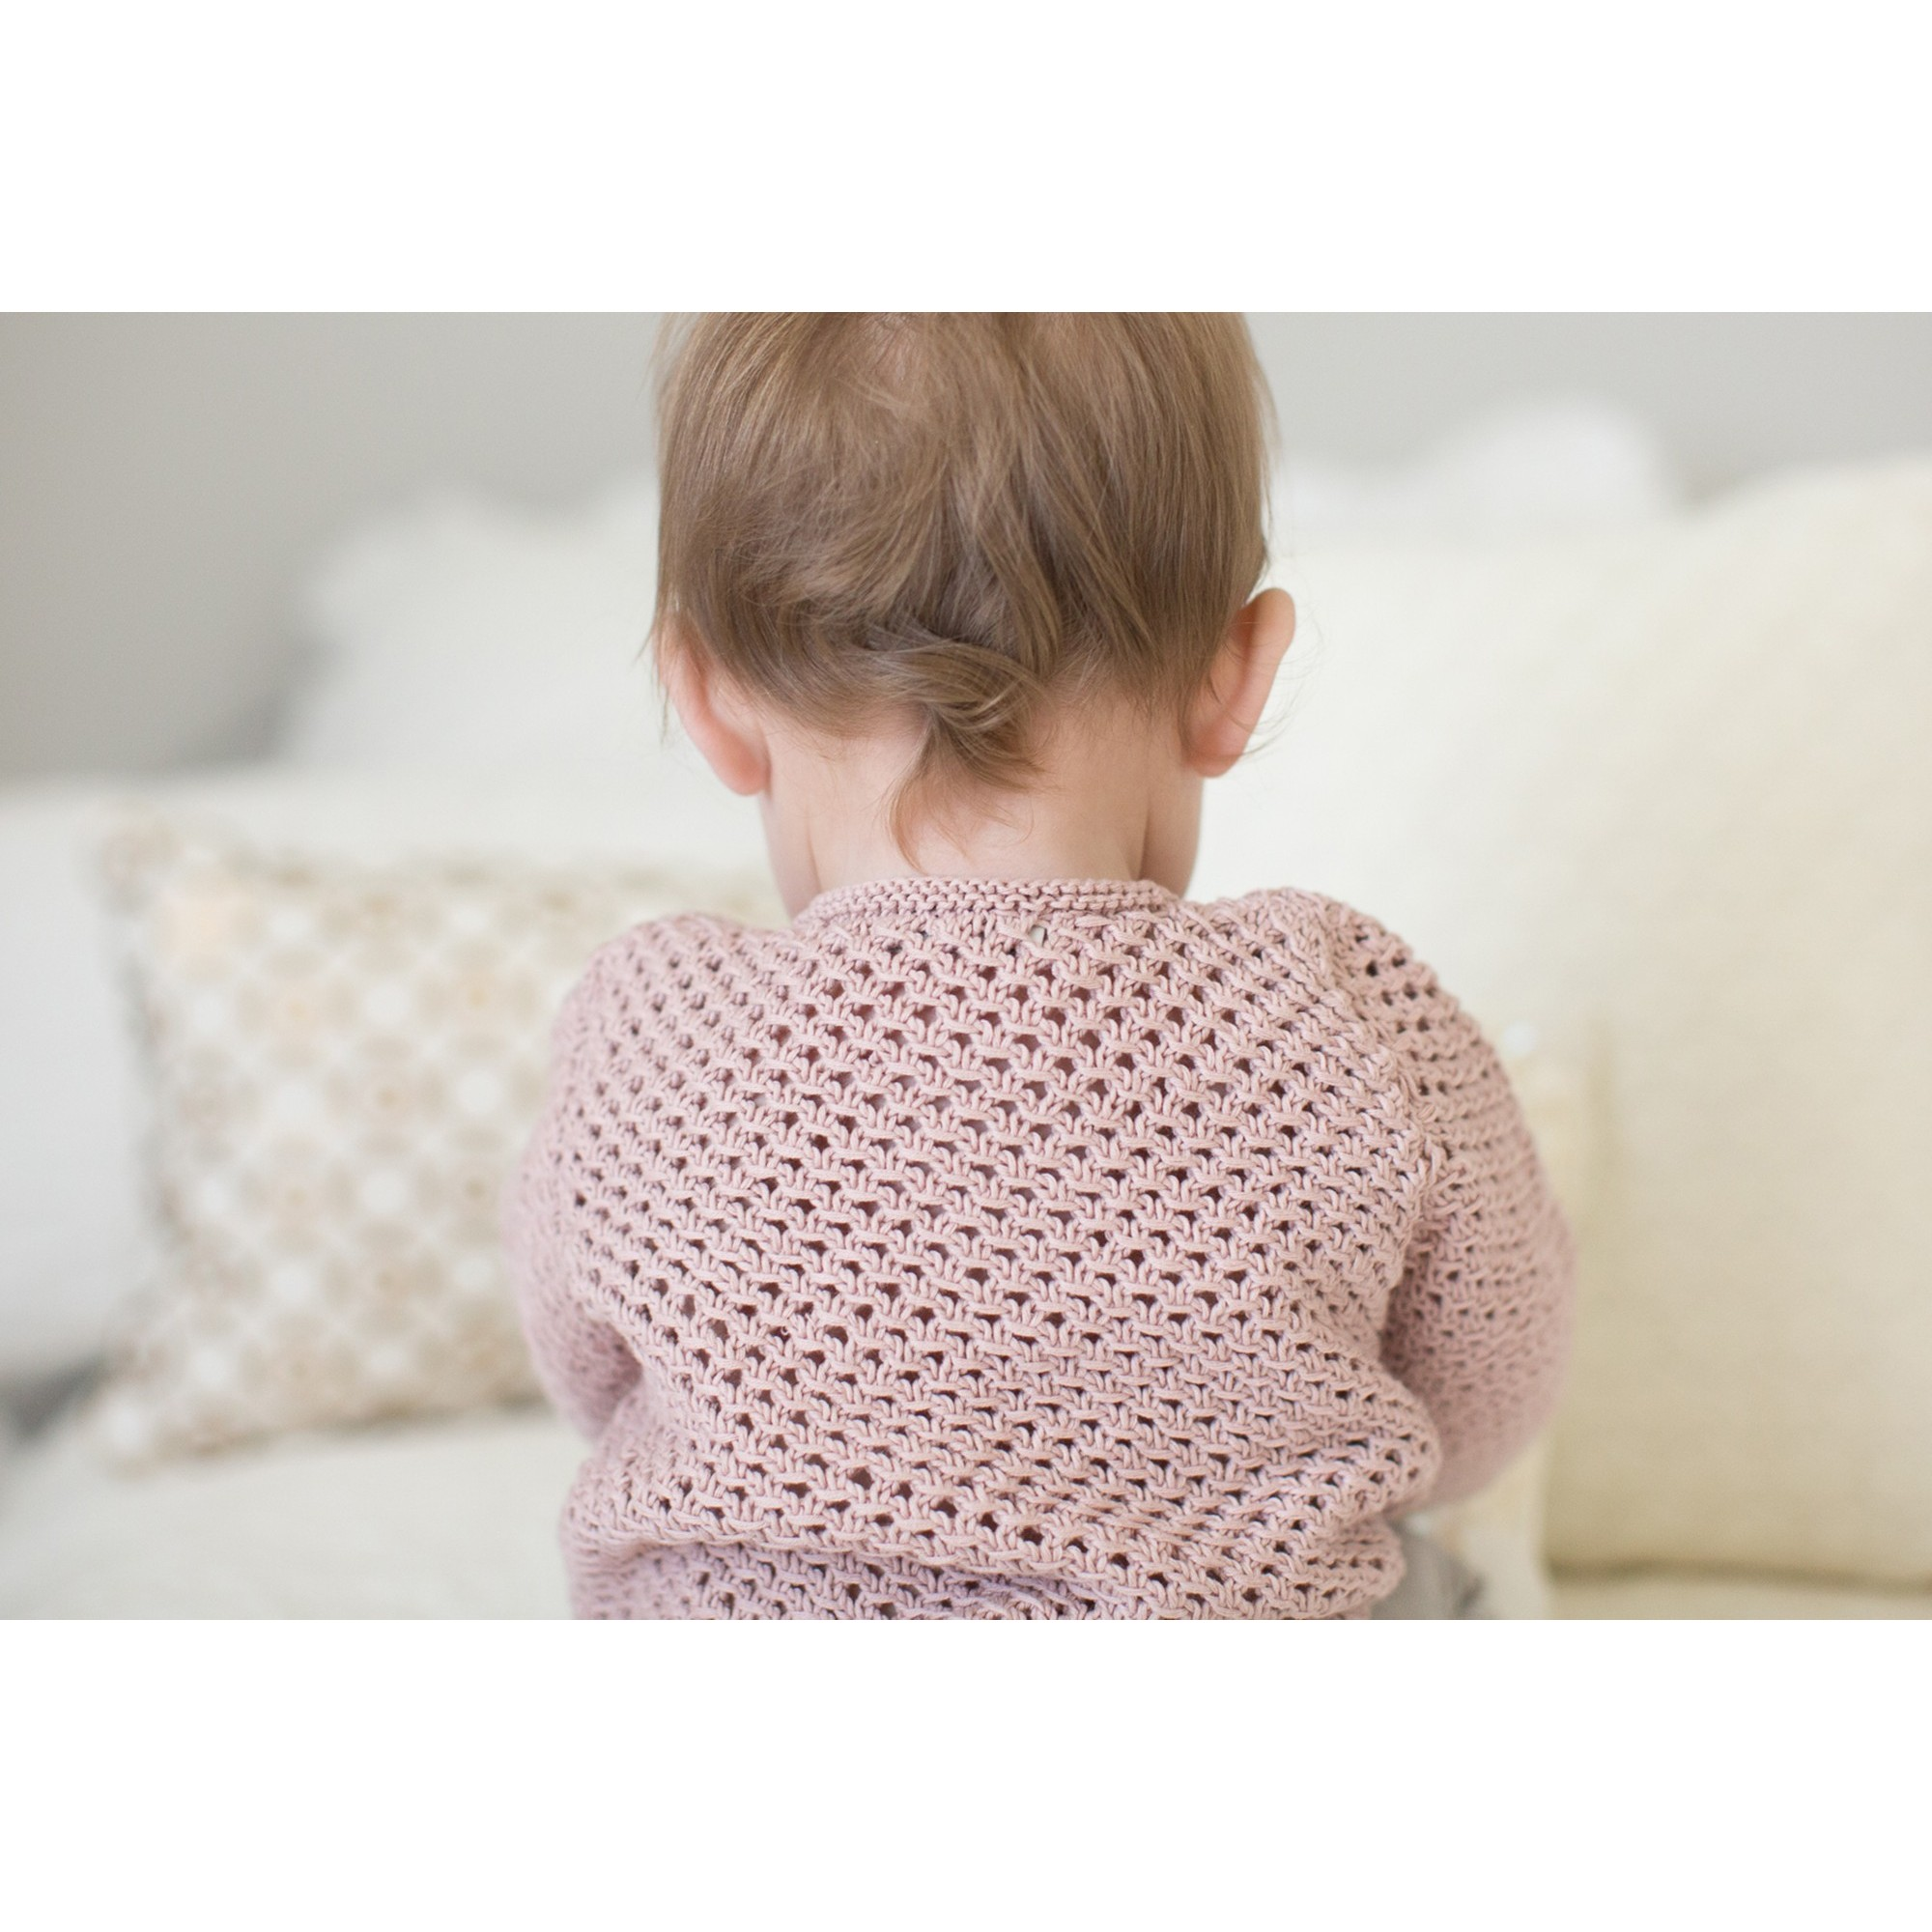 Opaline pink - Joséphine cardigan made from cotton - worn